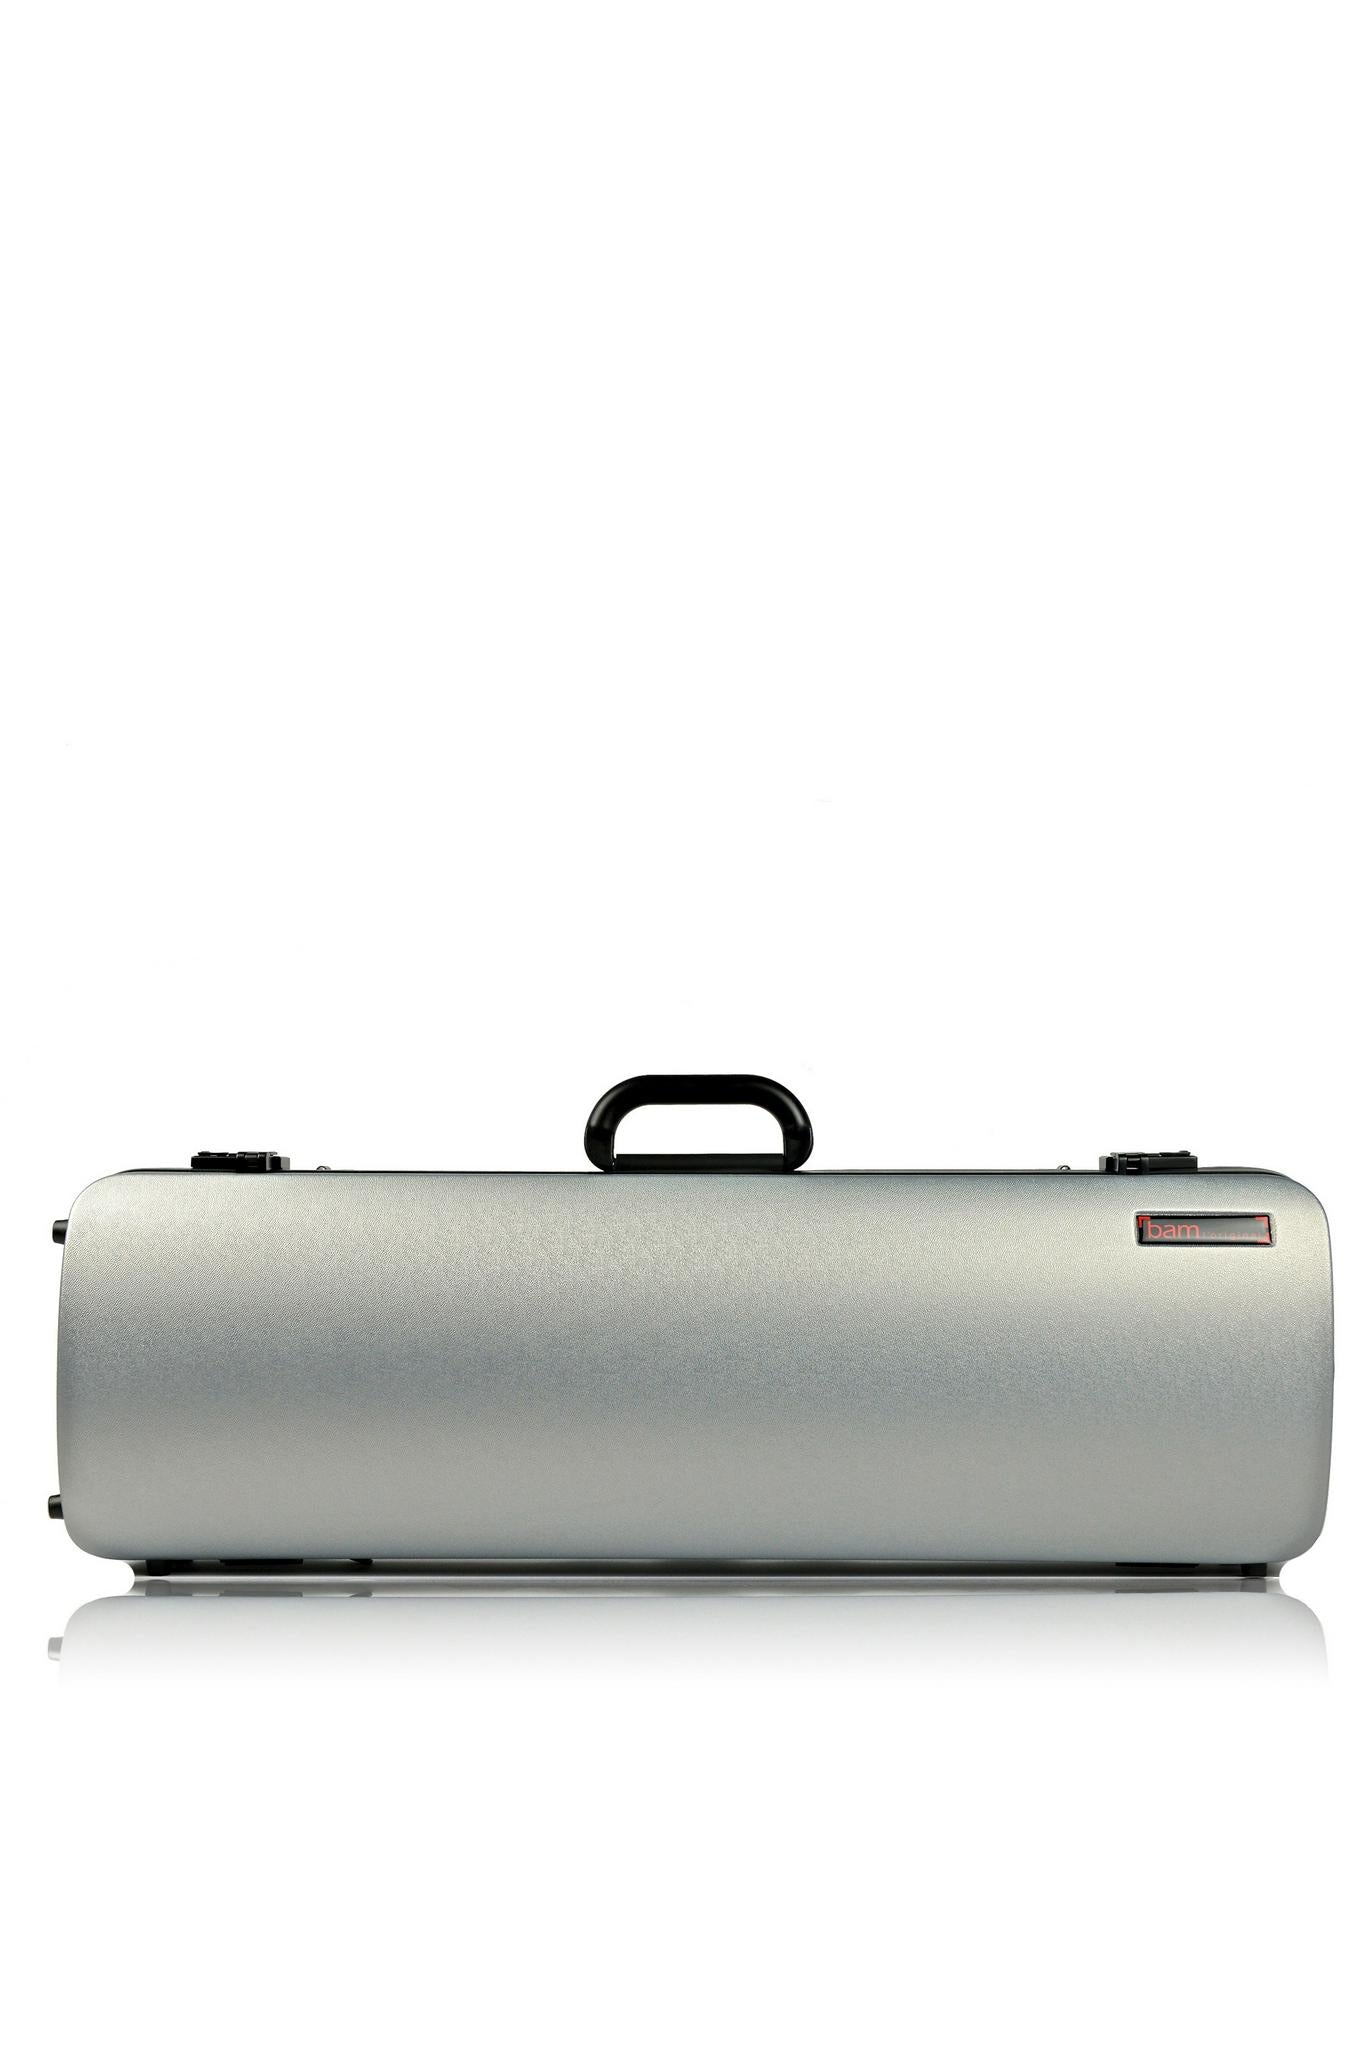 BAM HIGHTECH Oblong Violin Case